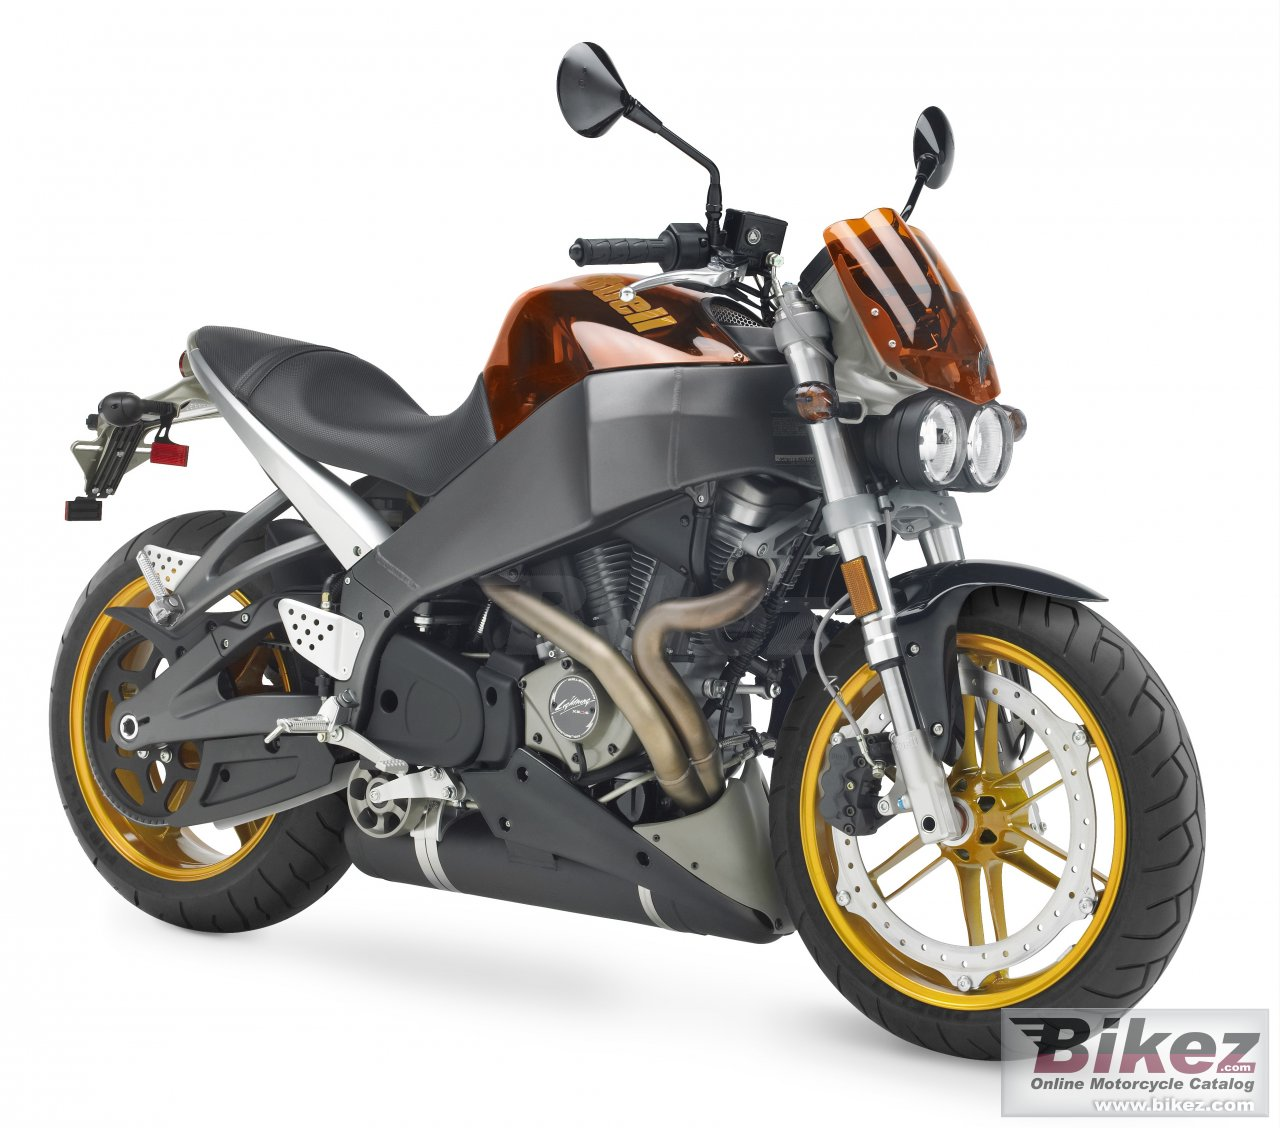 Big Buell lightning xb12scg picture and wallpaper from Bikez.com